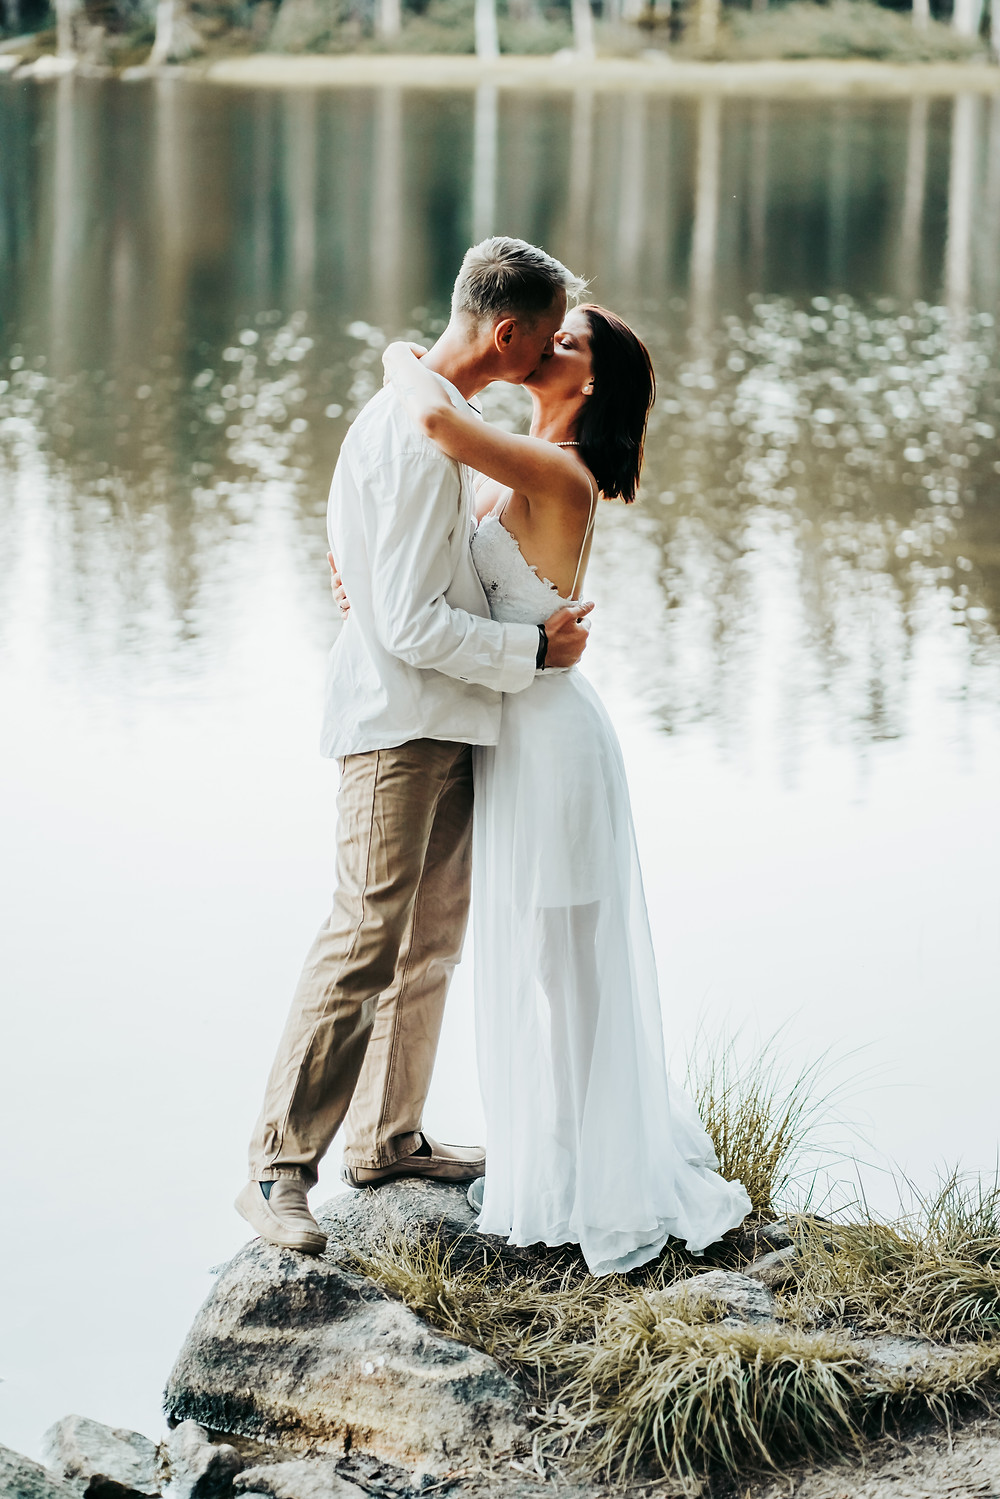 Bride and Groom kissing in front of a glistening lake.  Couples photos of eloping in Lake Tahoe